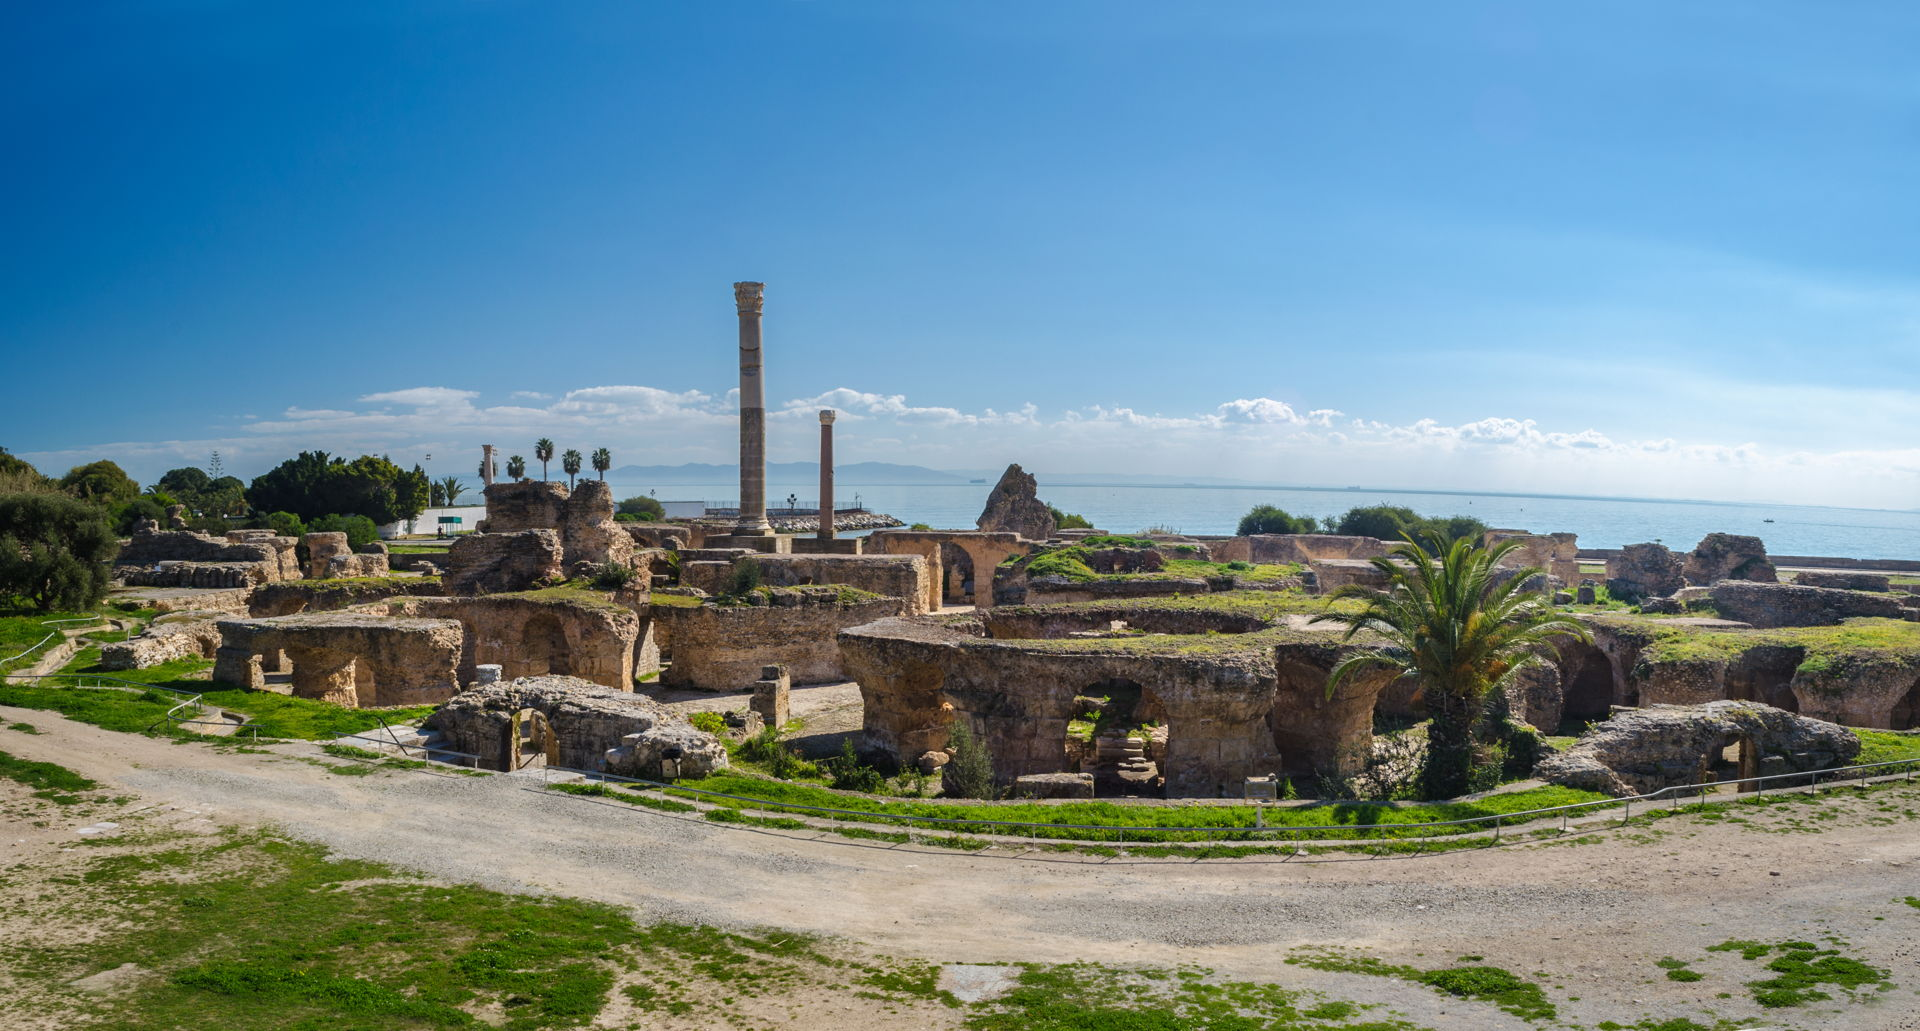 The Baths of Antoninus, baths of carthage, antonius baths, what to do in carthage tunisia, sightseeing carthage, punic civilization, backpacking tunisia, backpacking carthage, guide to carthage, how to visit carthage